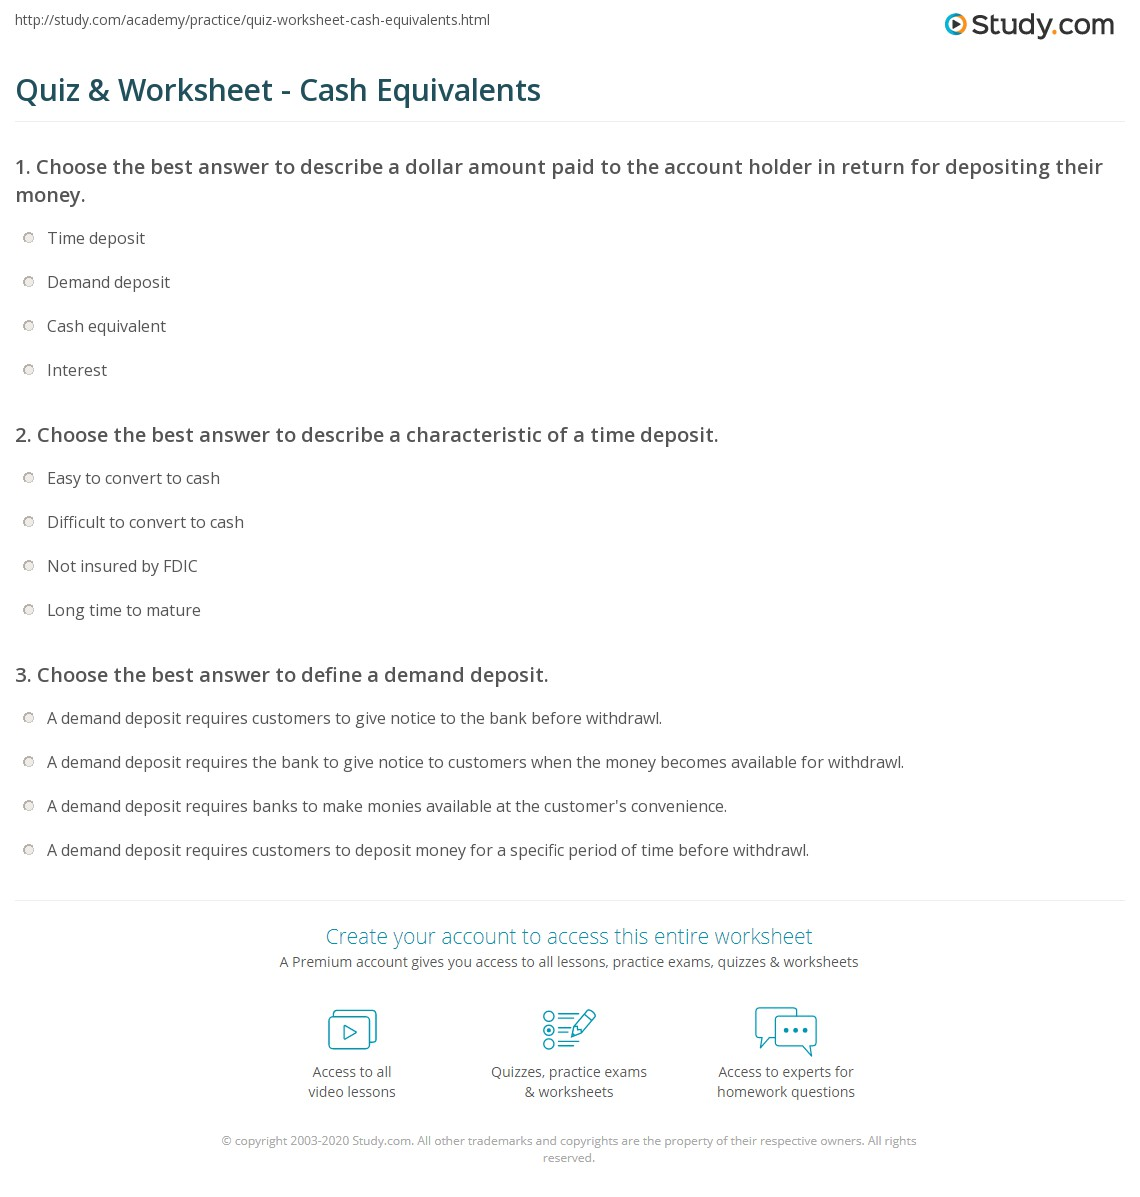 ACCOUNTING II QUESTION. PLEASE HELP. ITS ABOUT CASH EQUIVALENTS?